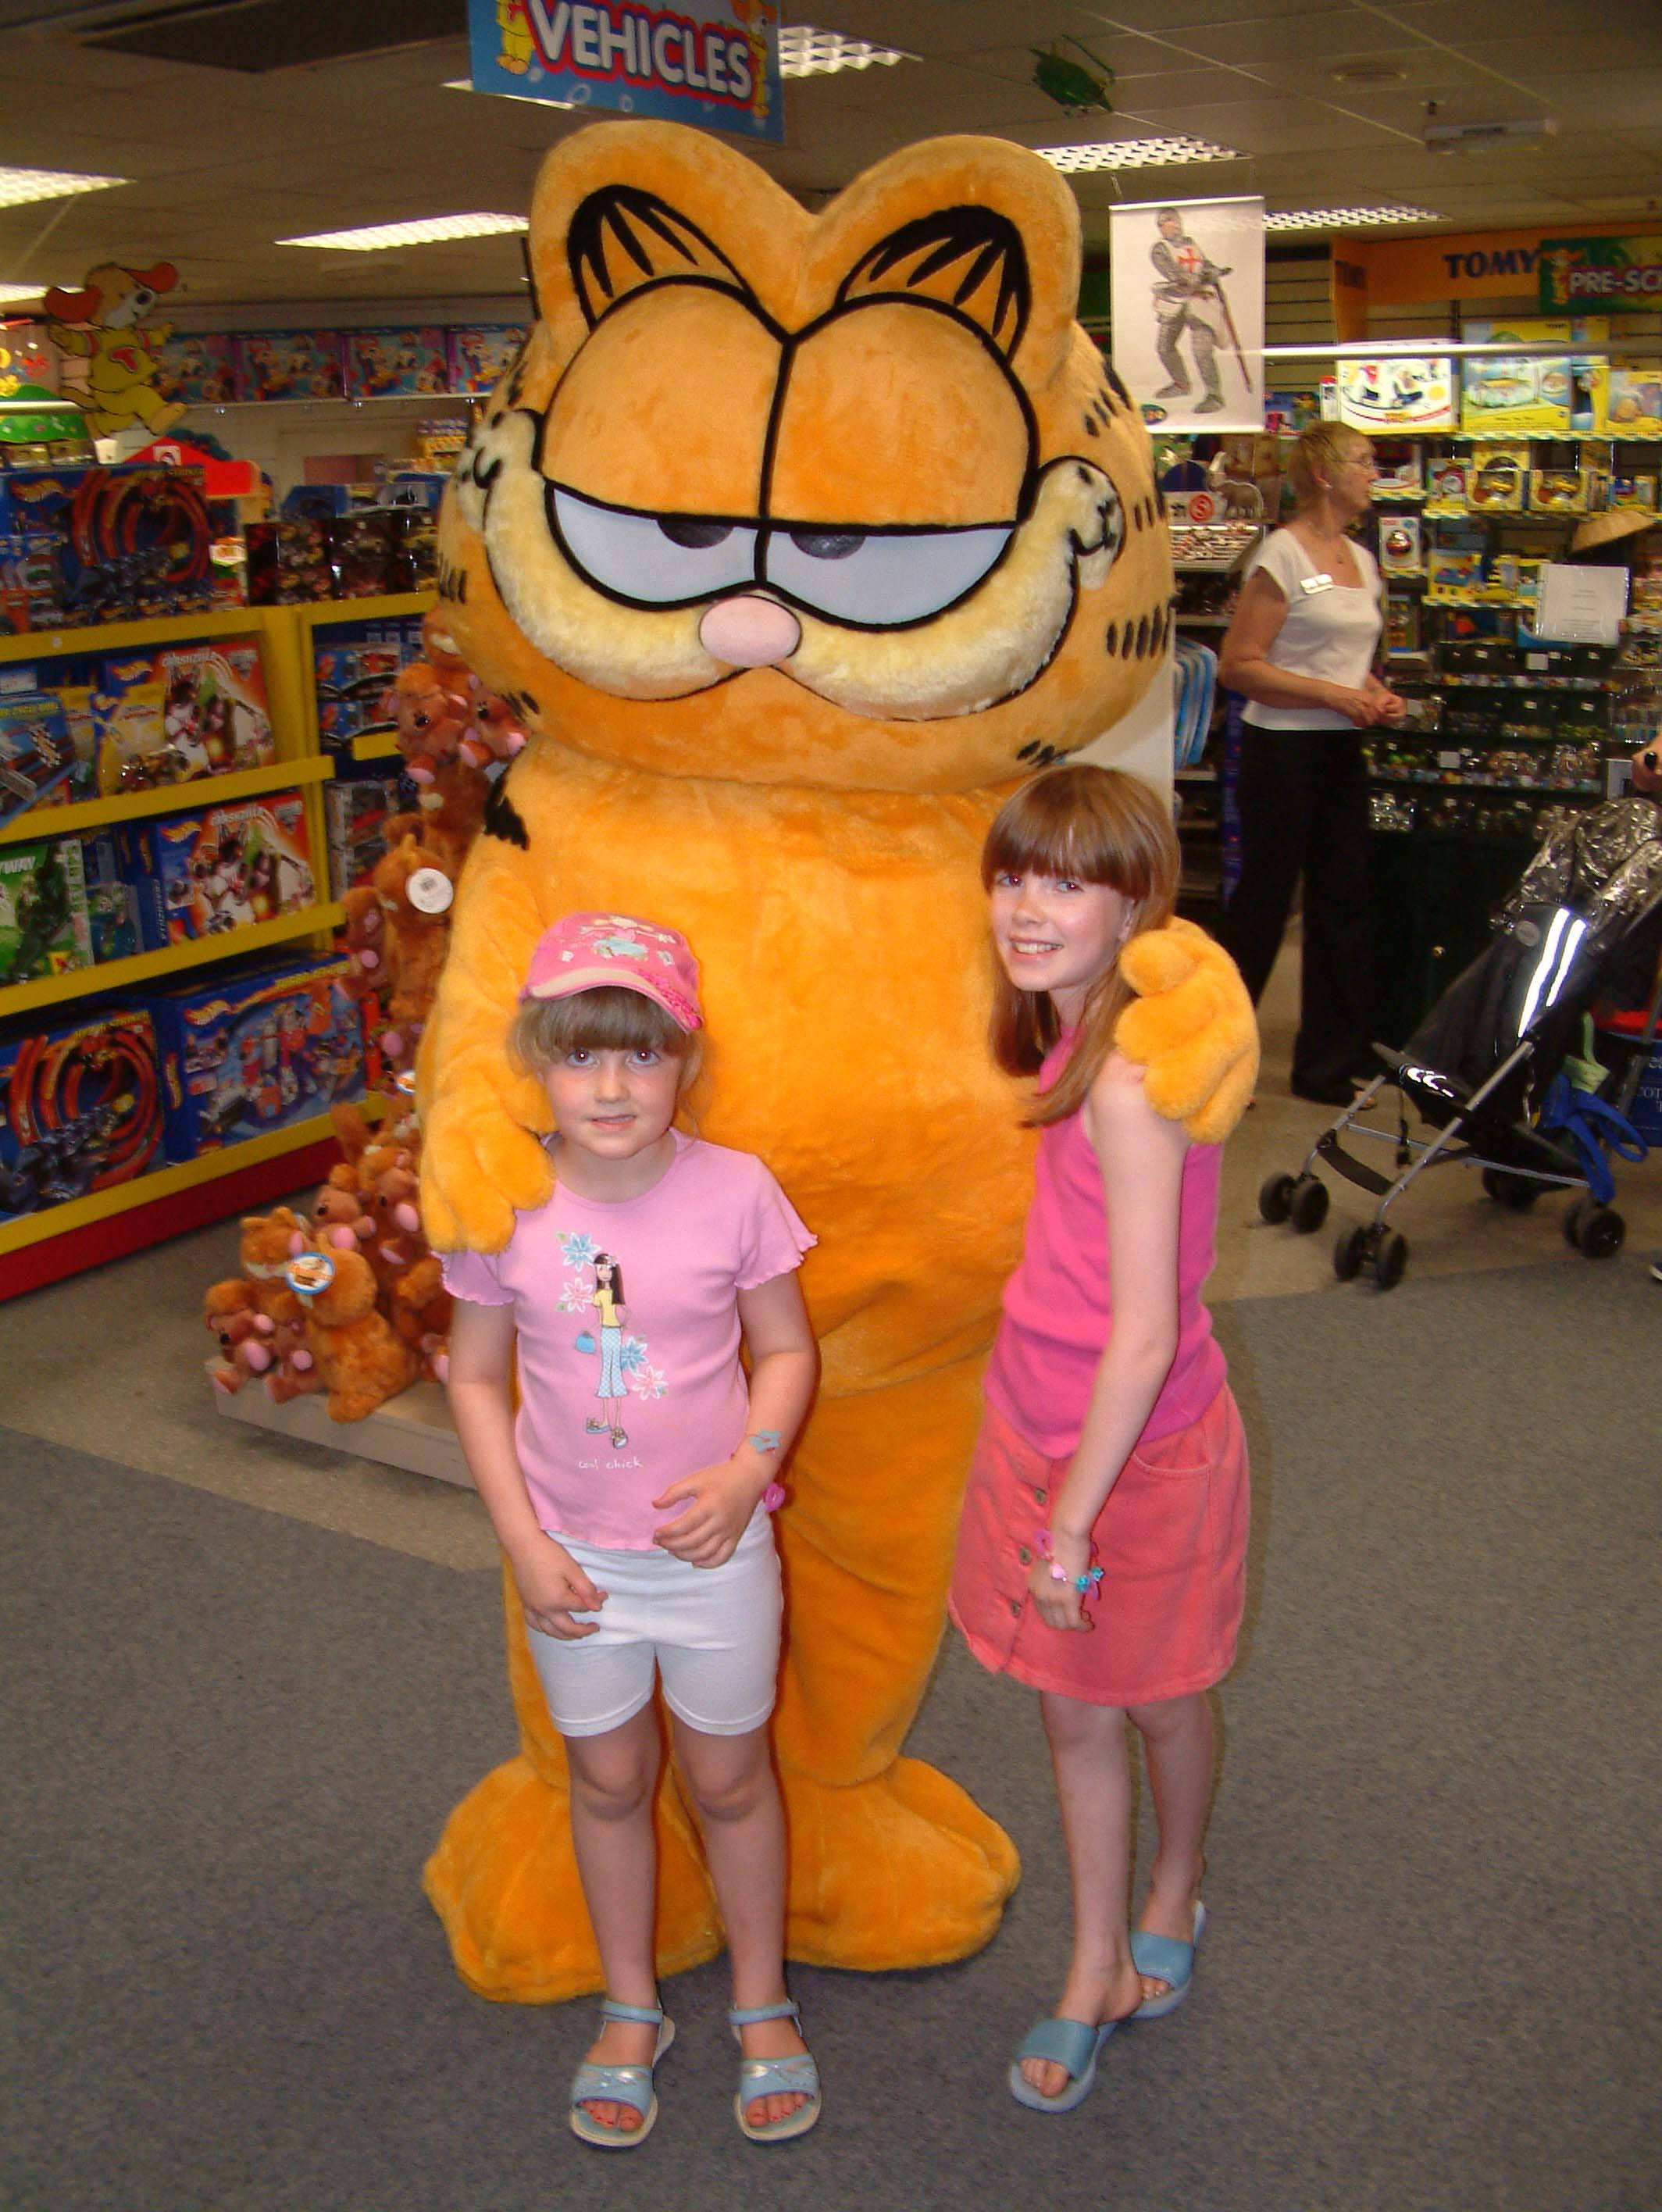 Garfield costume character mascot meets young fans in-store